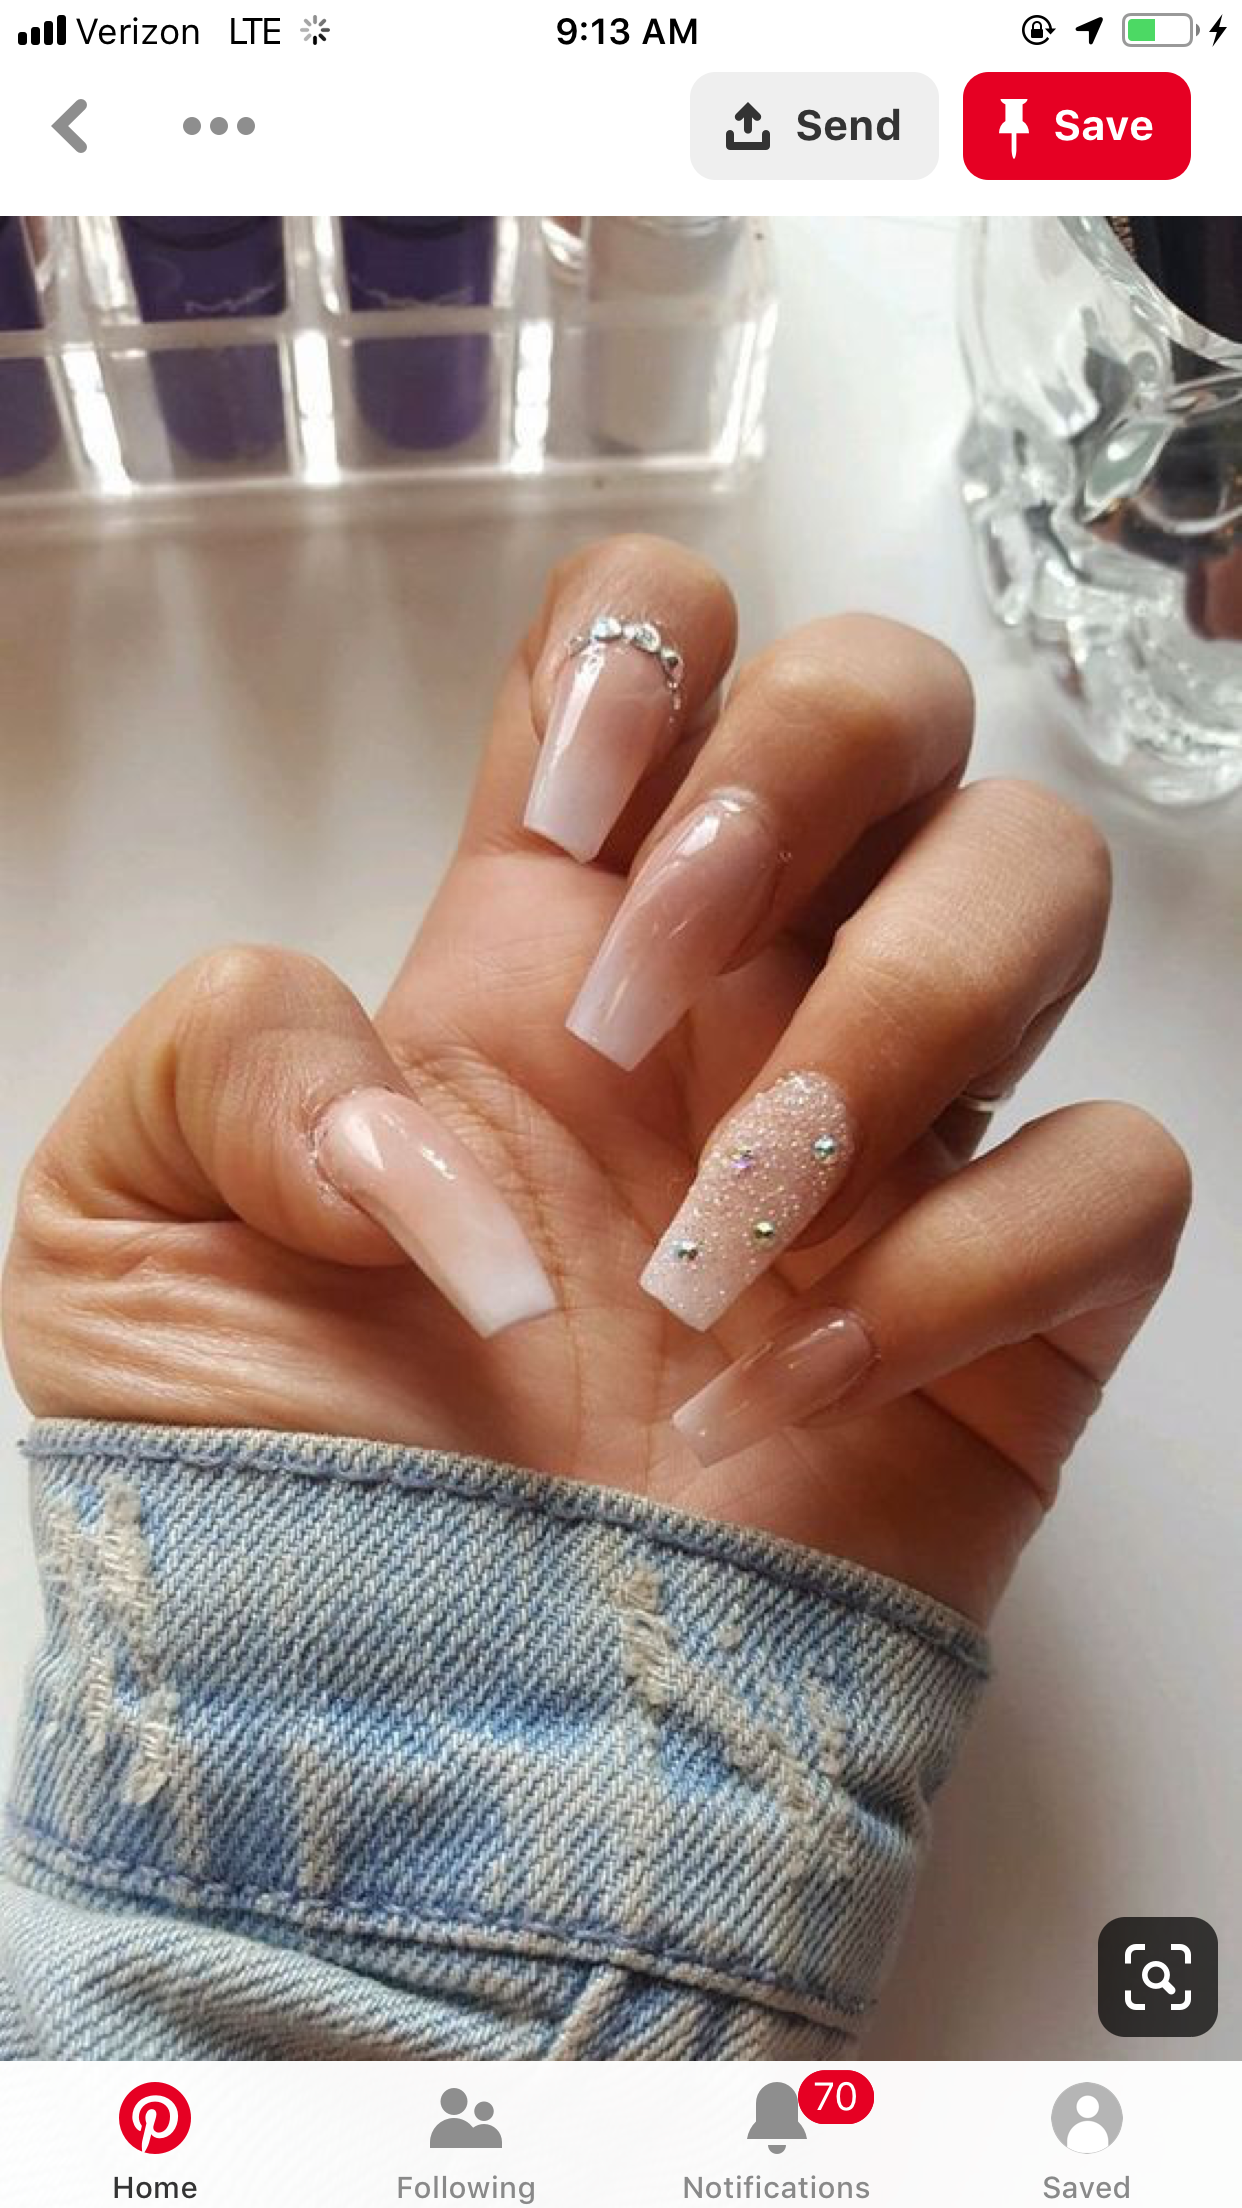 Pin by Sandy Rodriguez on Nails | Nails at home, Nails ...